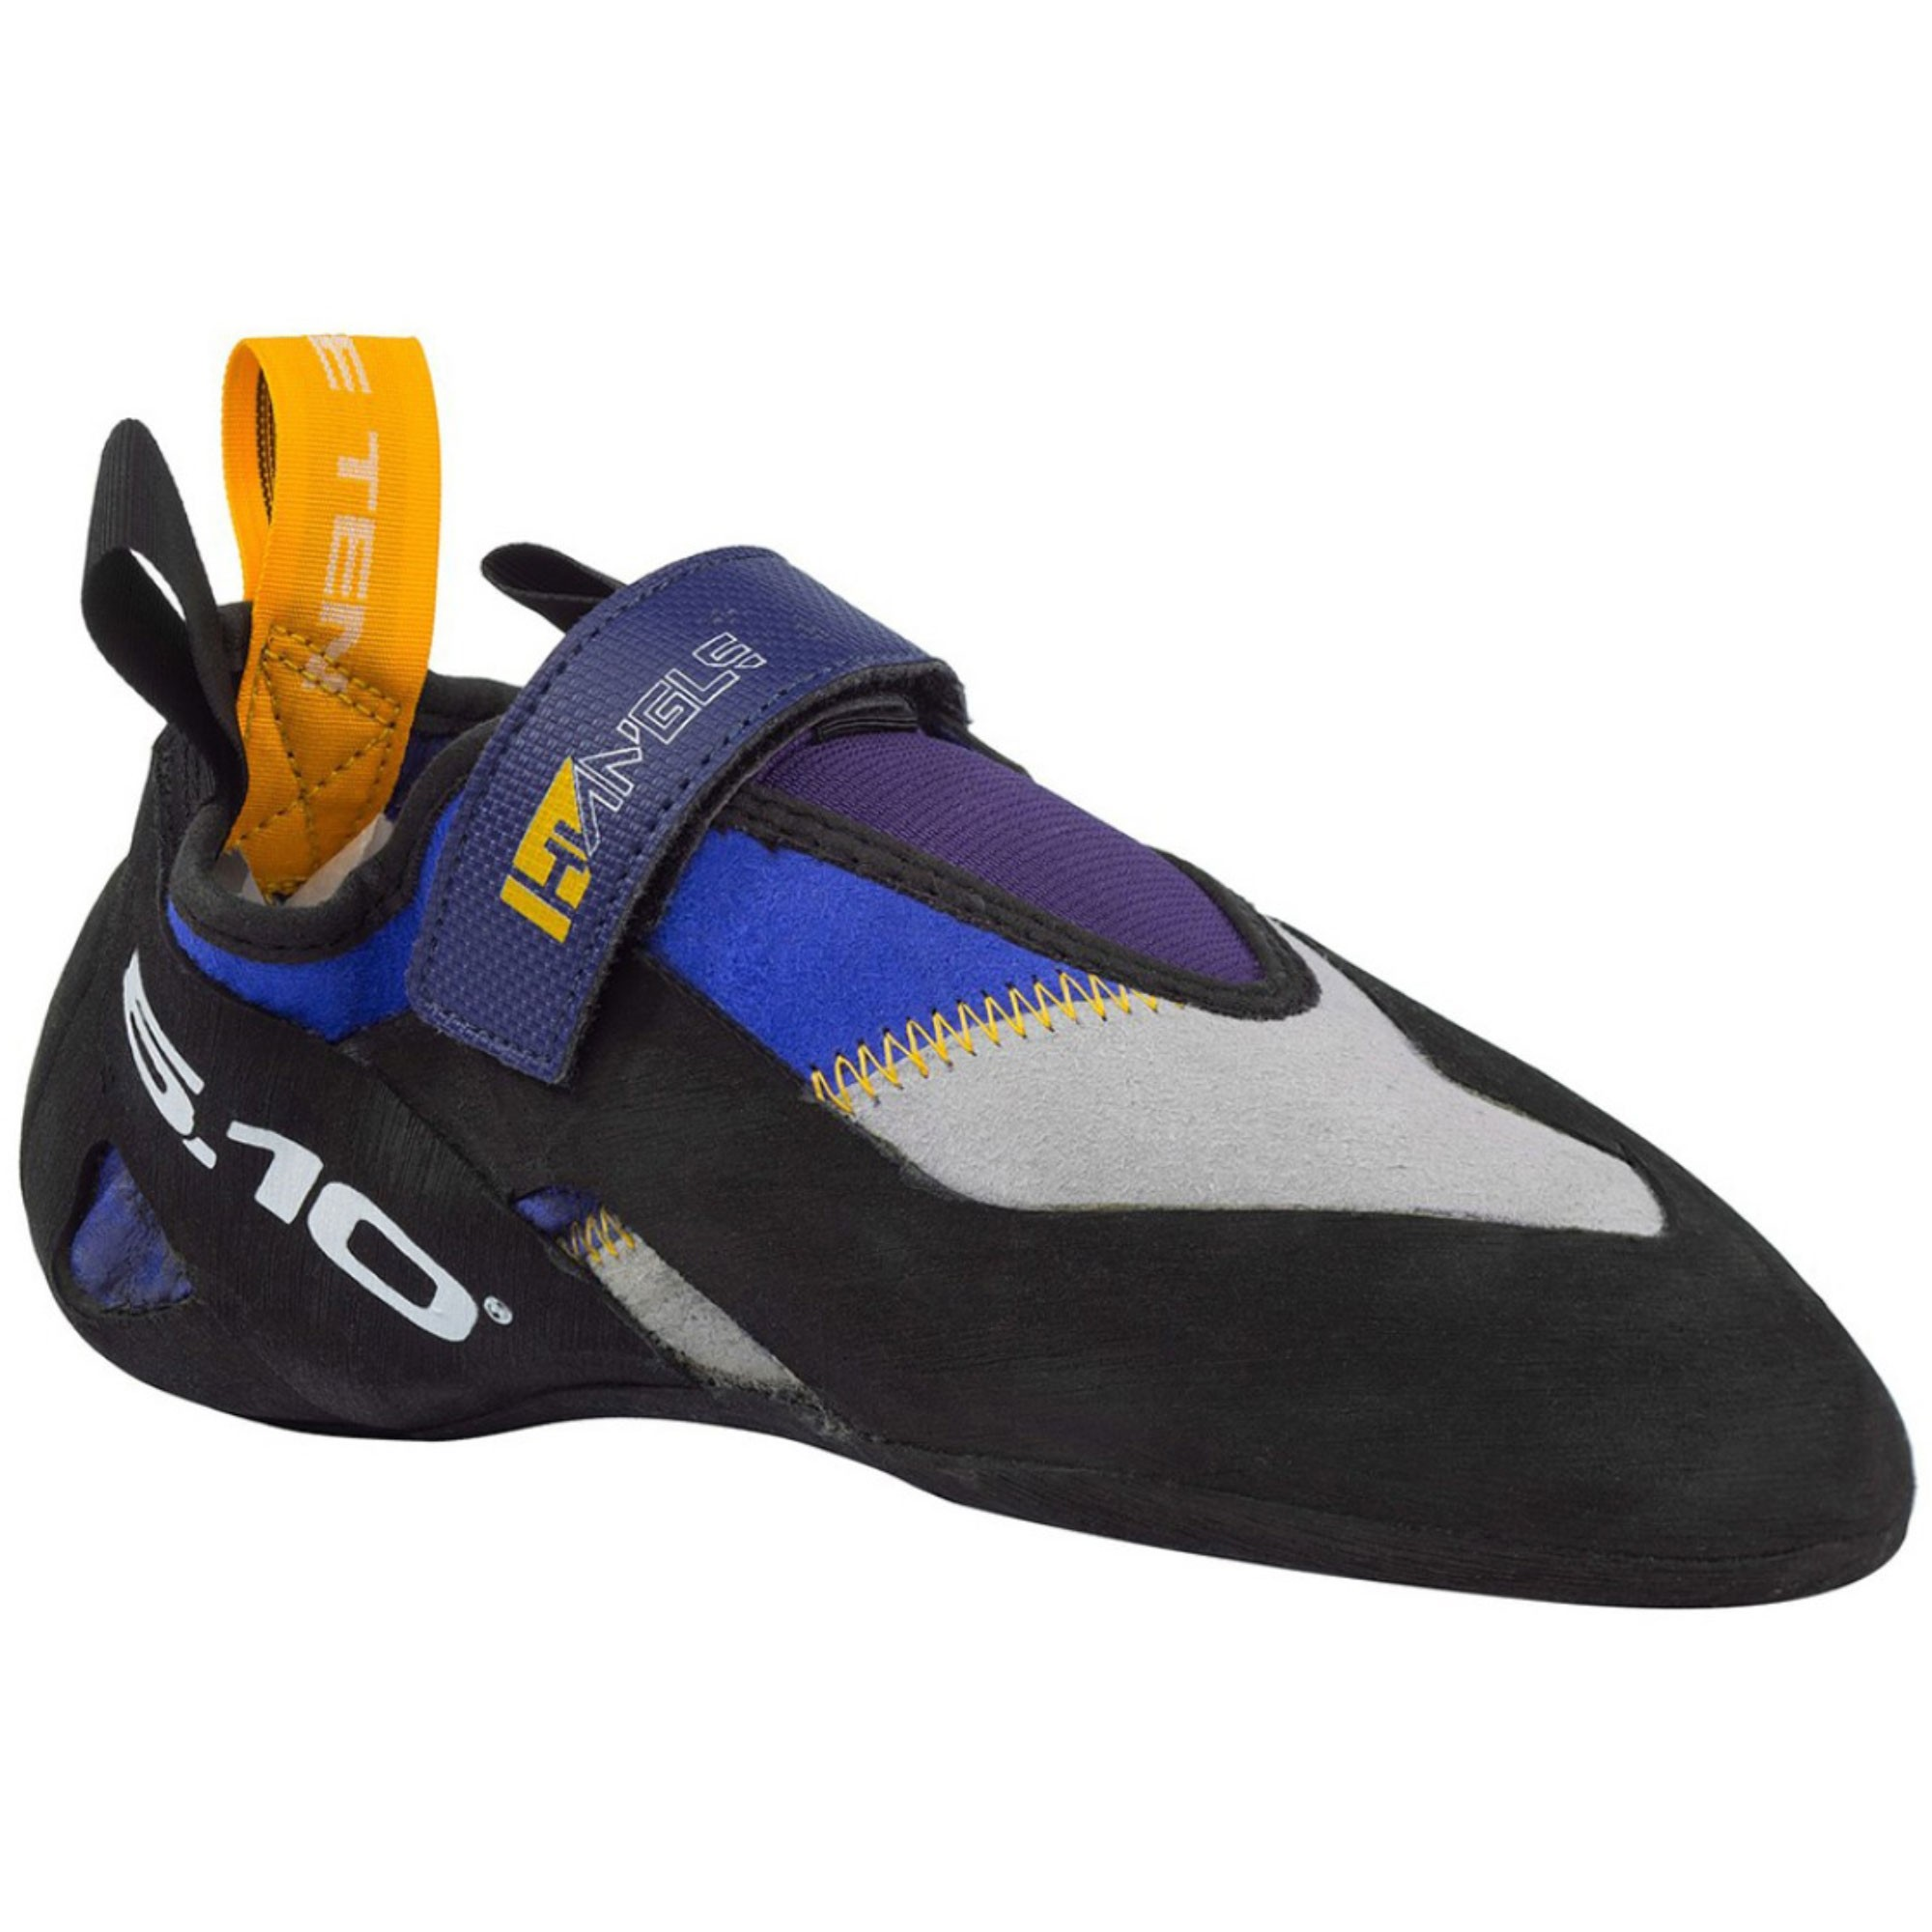 Five Ten Hiangle Synthetic Women's Climbing Shoes - Purple